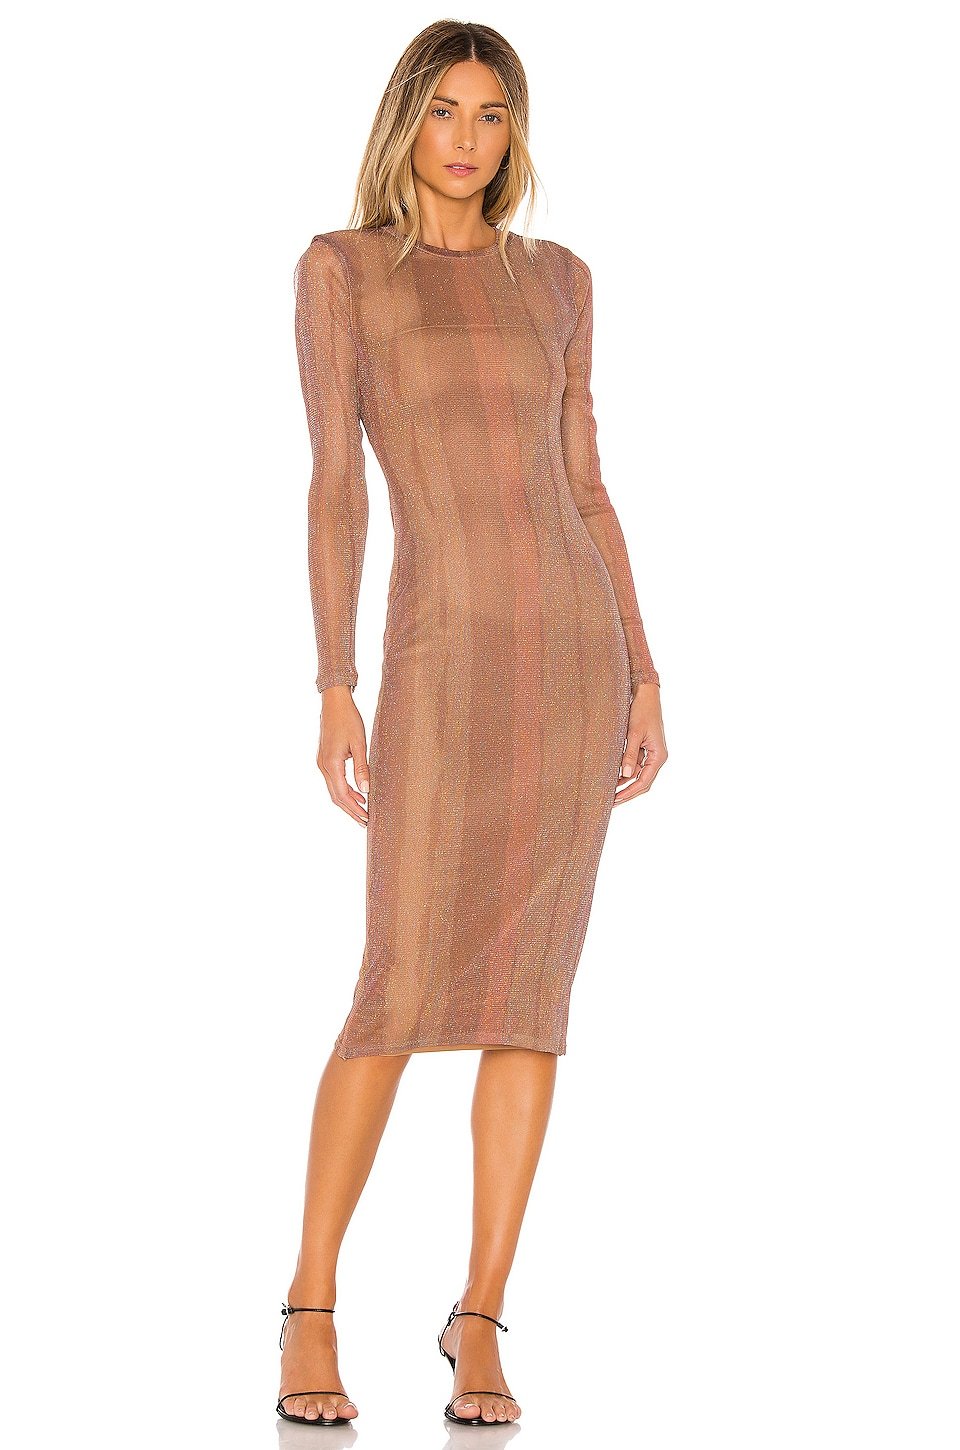 MAJORELLE Weston Midi Dress in Desert Brown